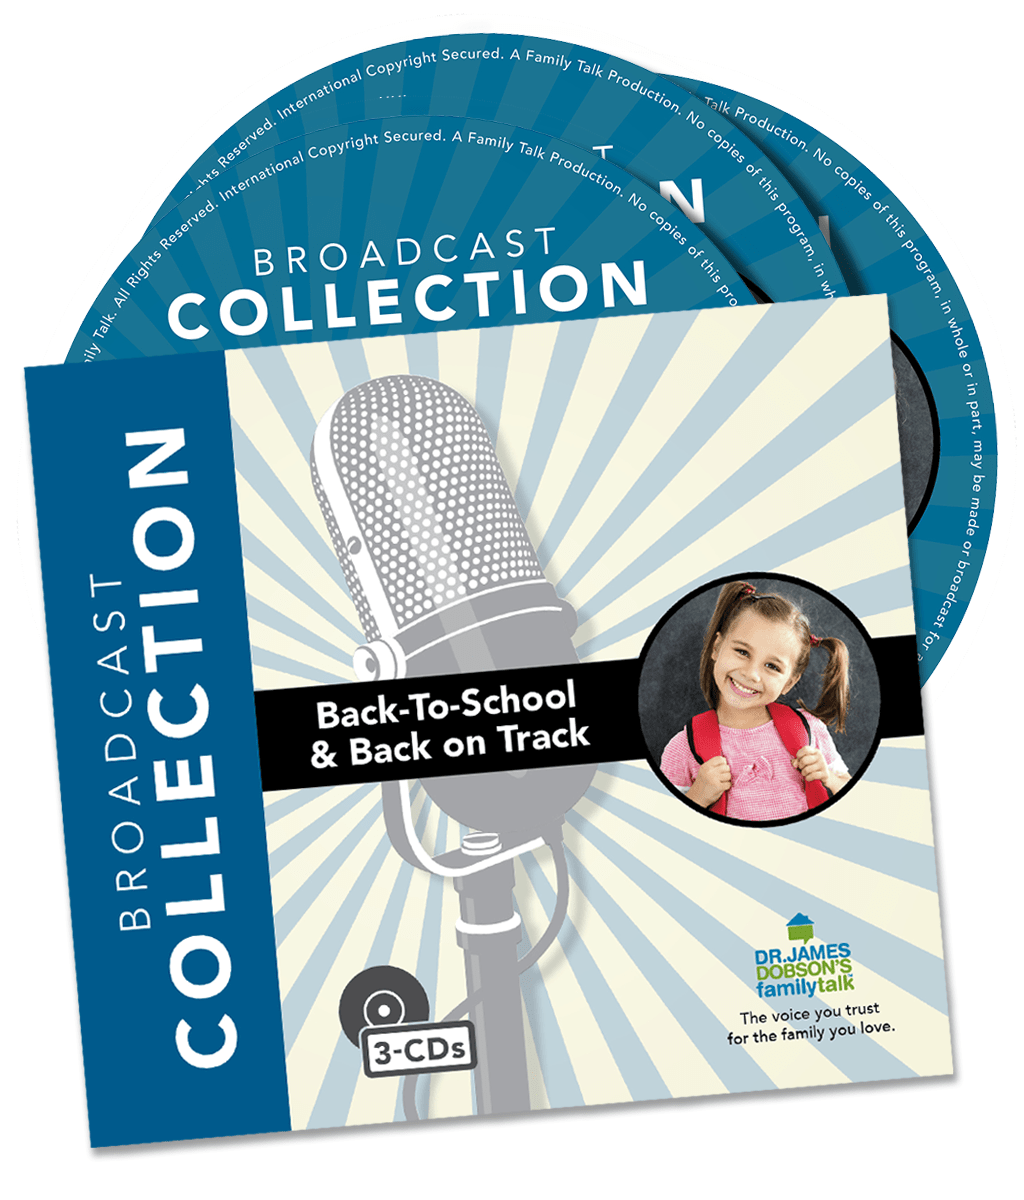 Back-to-School & Back on Track (3-CD Set) Product Photo